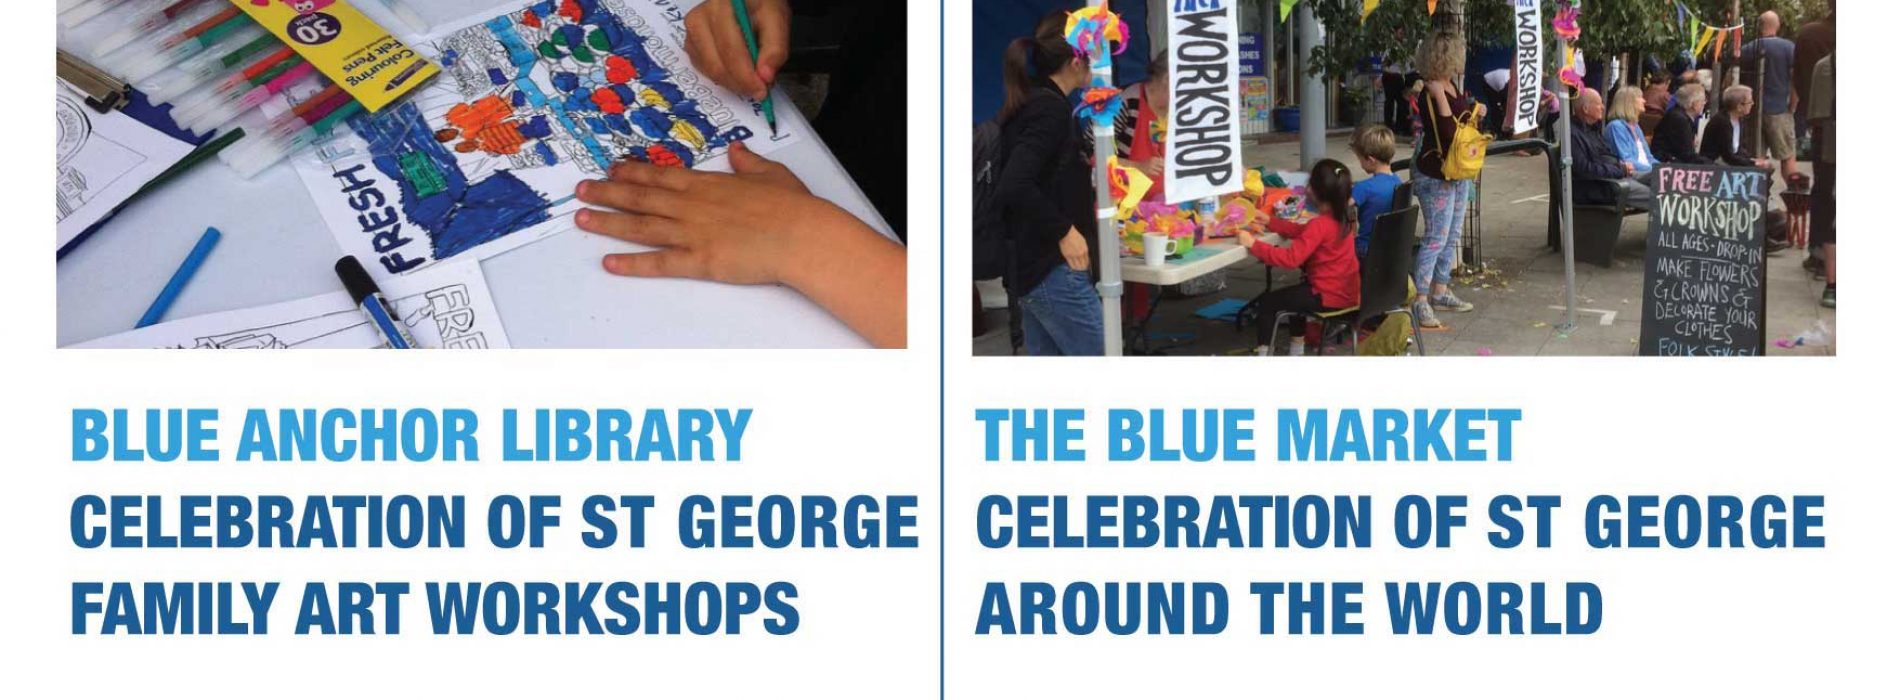 St George and Easter free events in Bermondsey at Market Place SE16